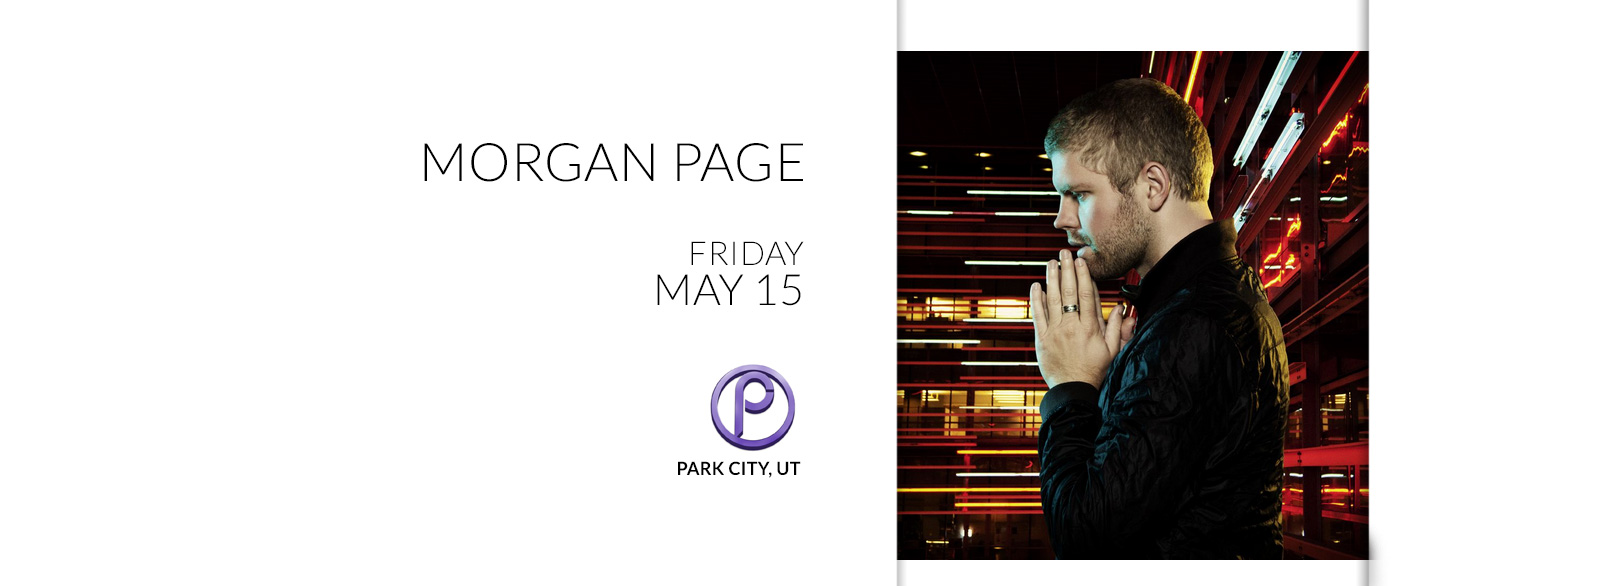 Morgan Page @ Park City Live